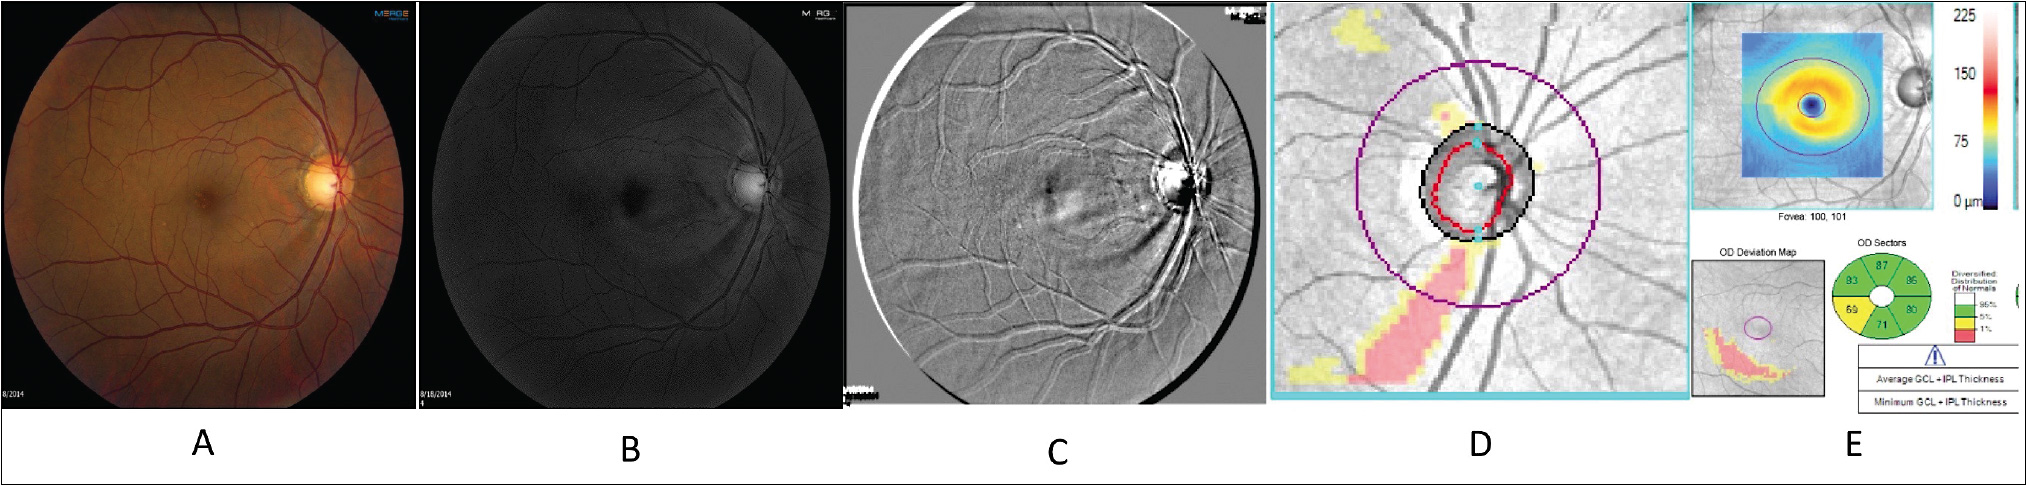 Figure 2. Digital filters during tele-glaucoma enhance retinal nerve fiber layer defect that is detected on OCT (A: Color image, B: Blue channel, C: Emboss filter, D: OCT RNFL defect, E: OCT posterior pole ganglion cell loss).